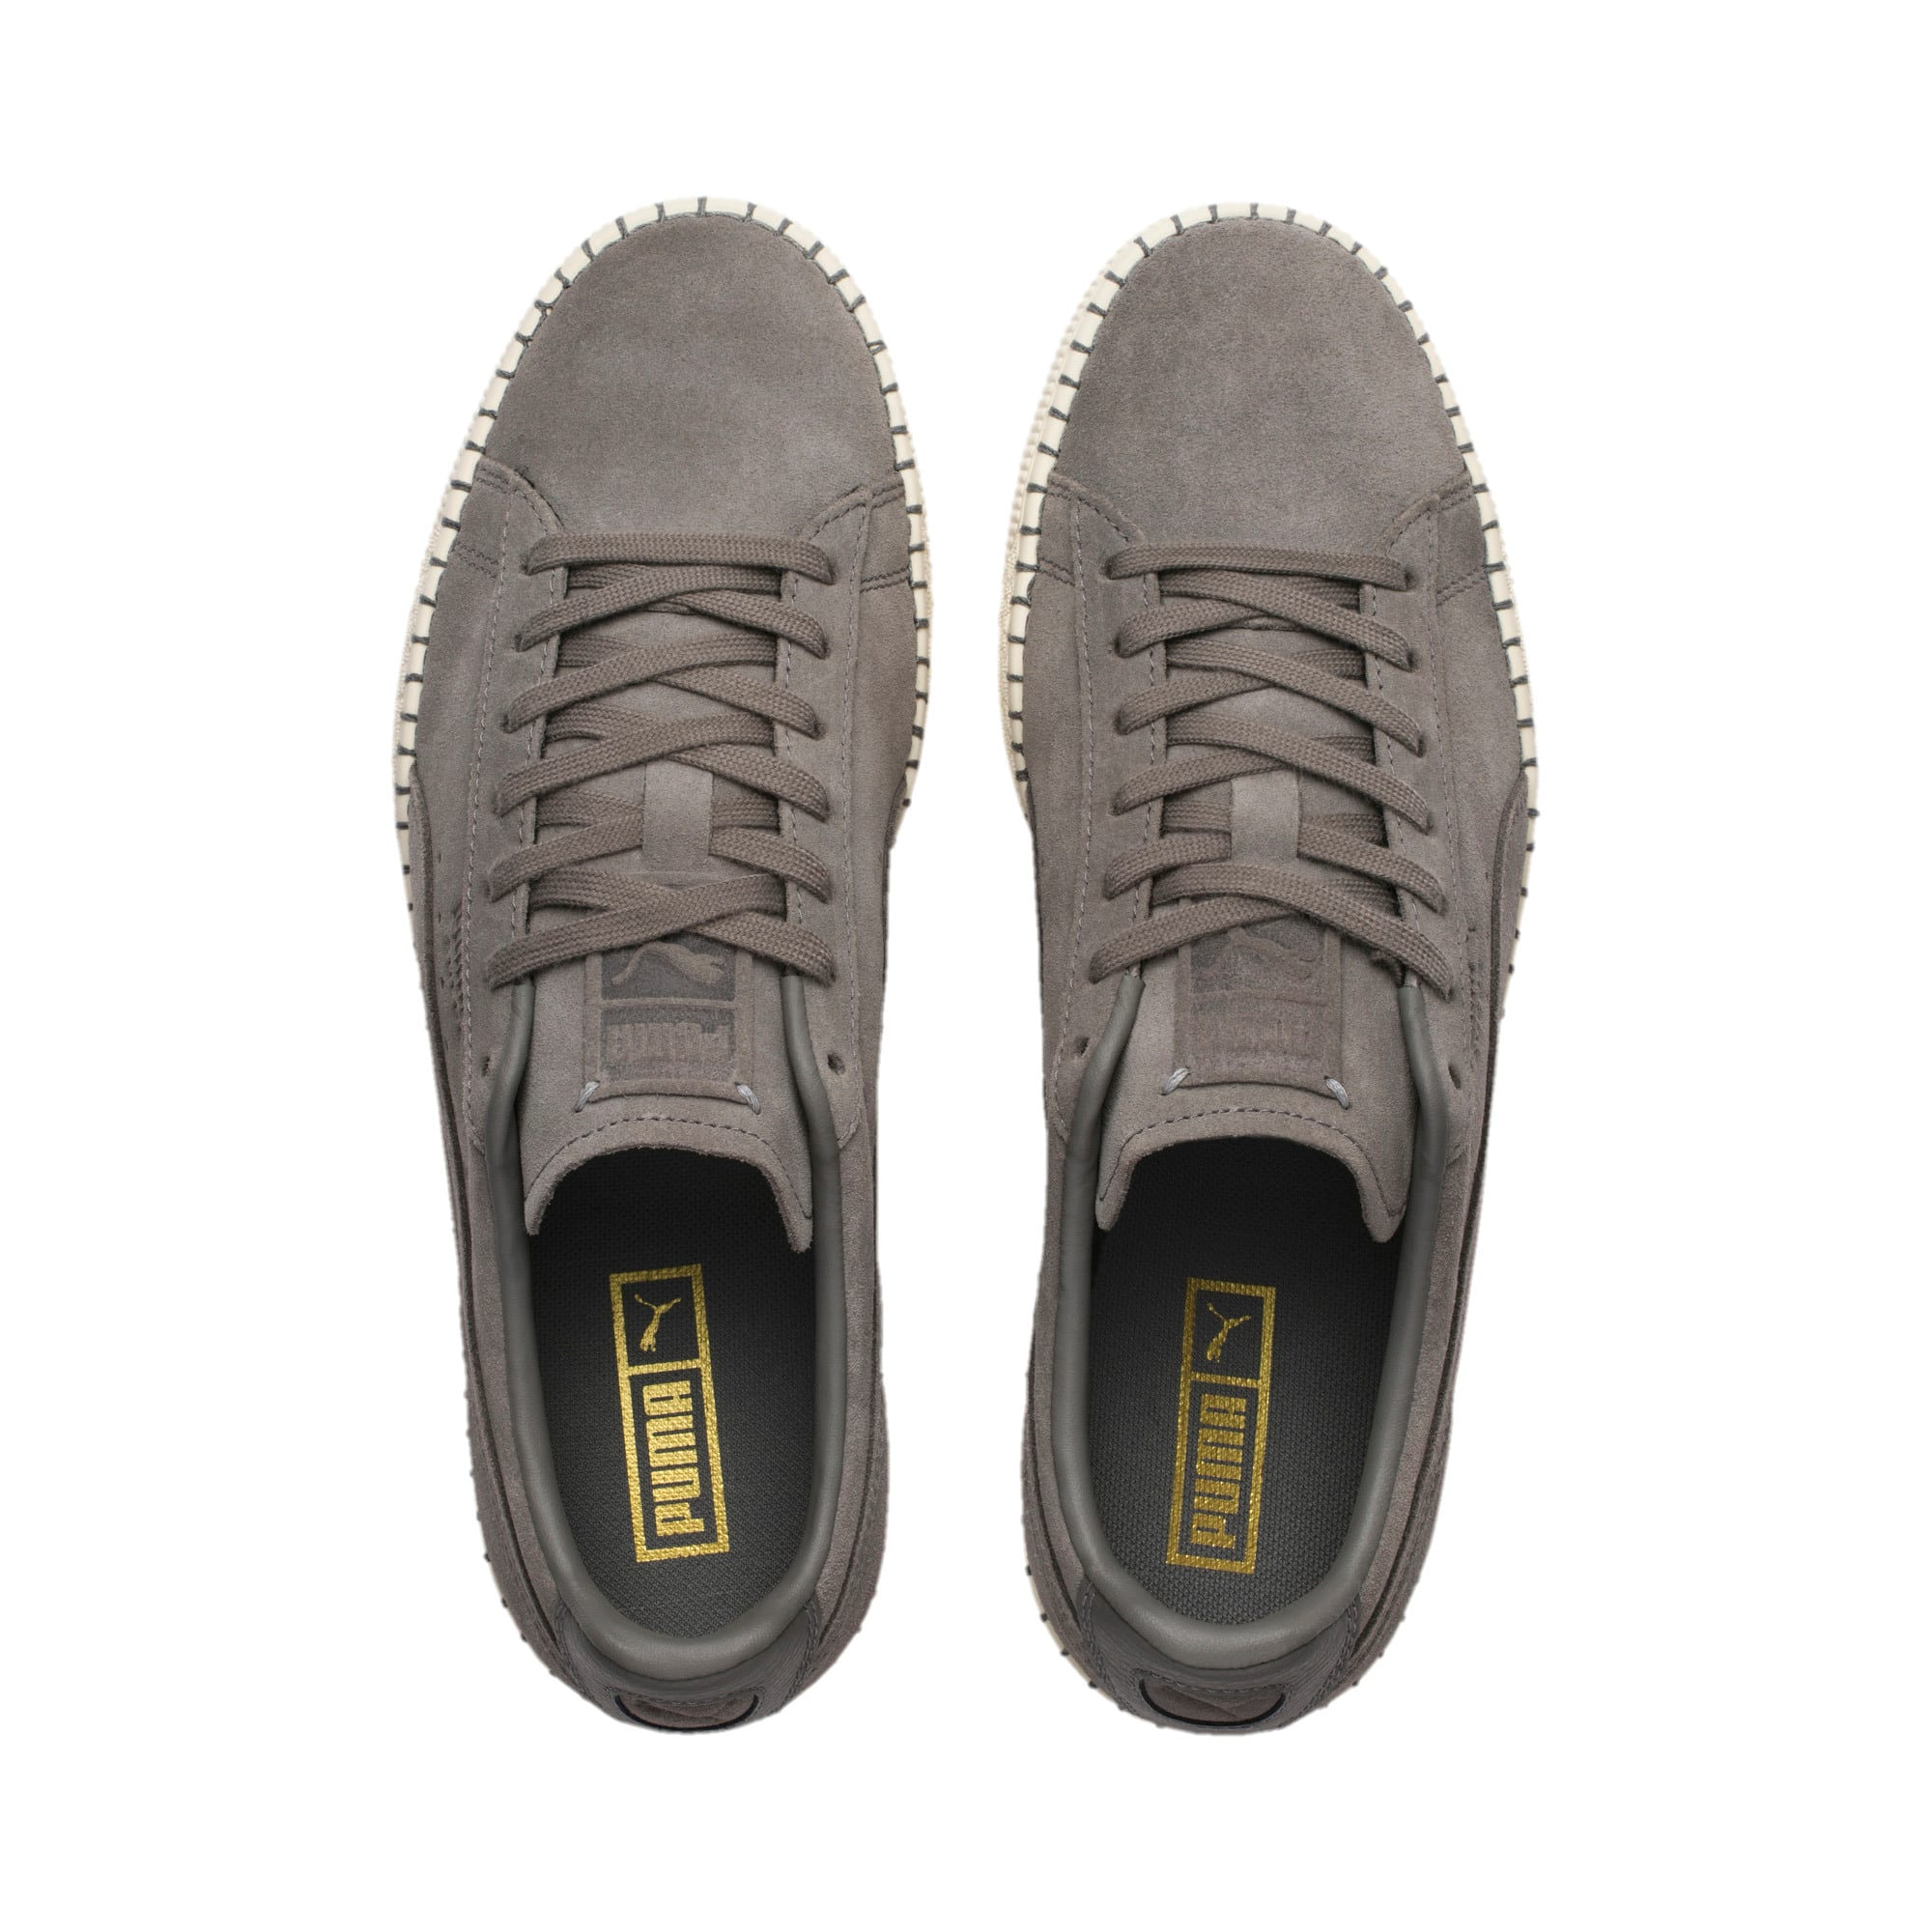 reputable site cf549 7675f Suede Classic Blanket Stitch Sneakers